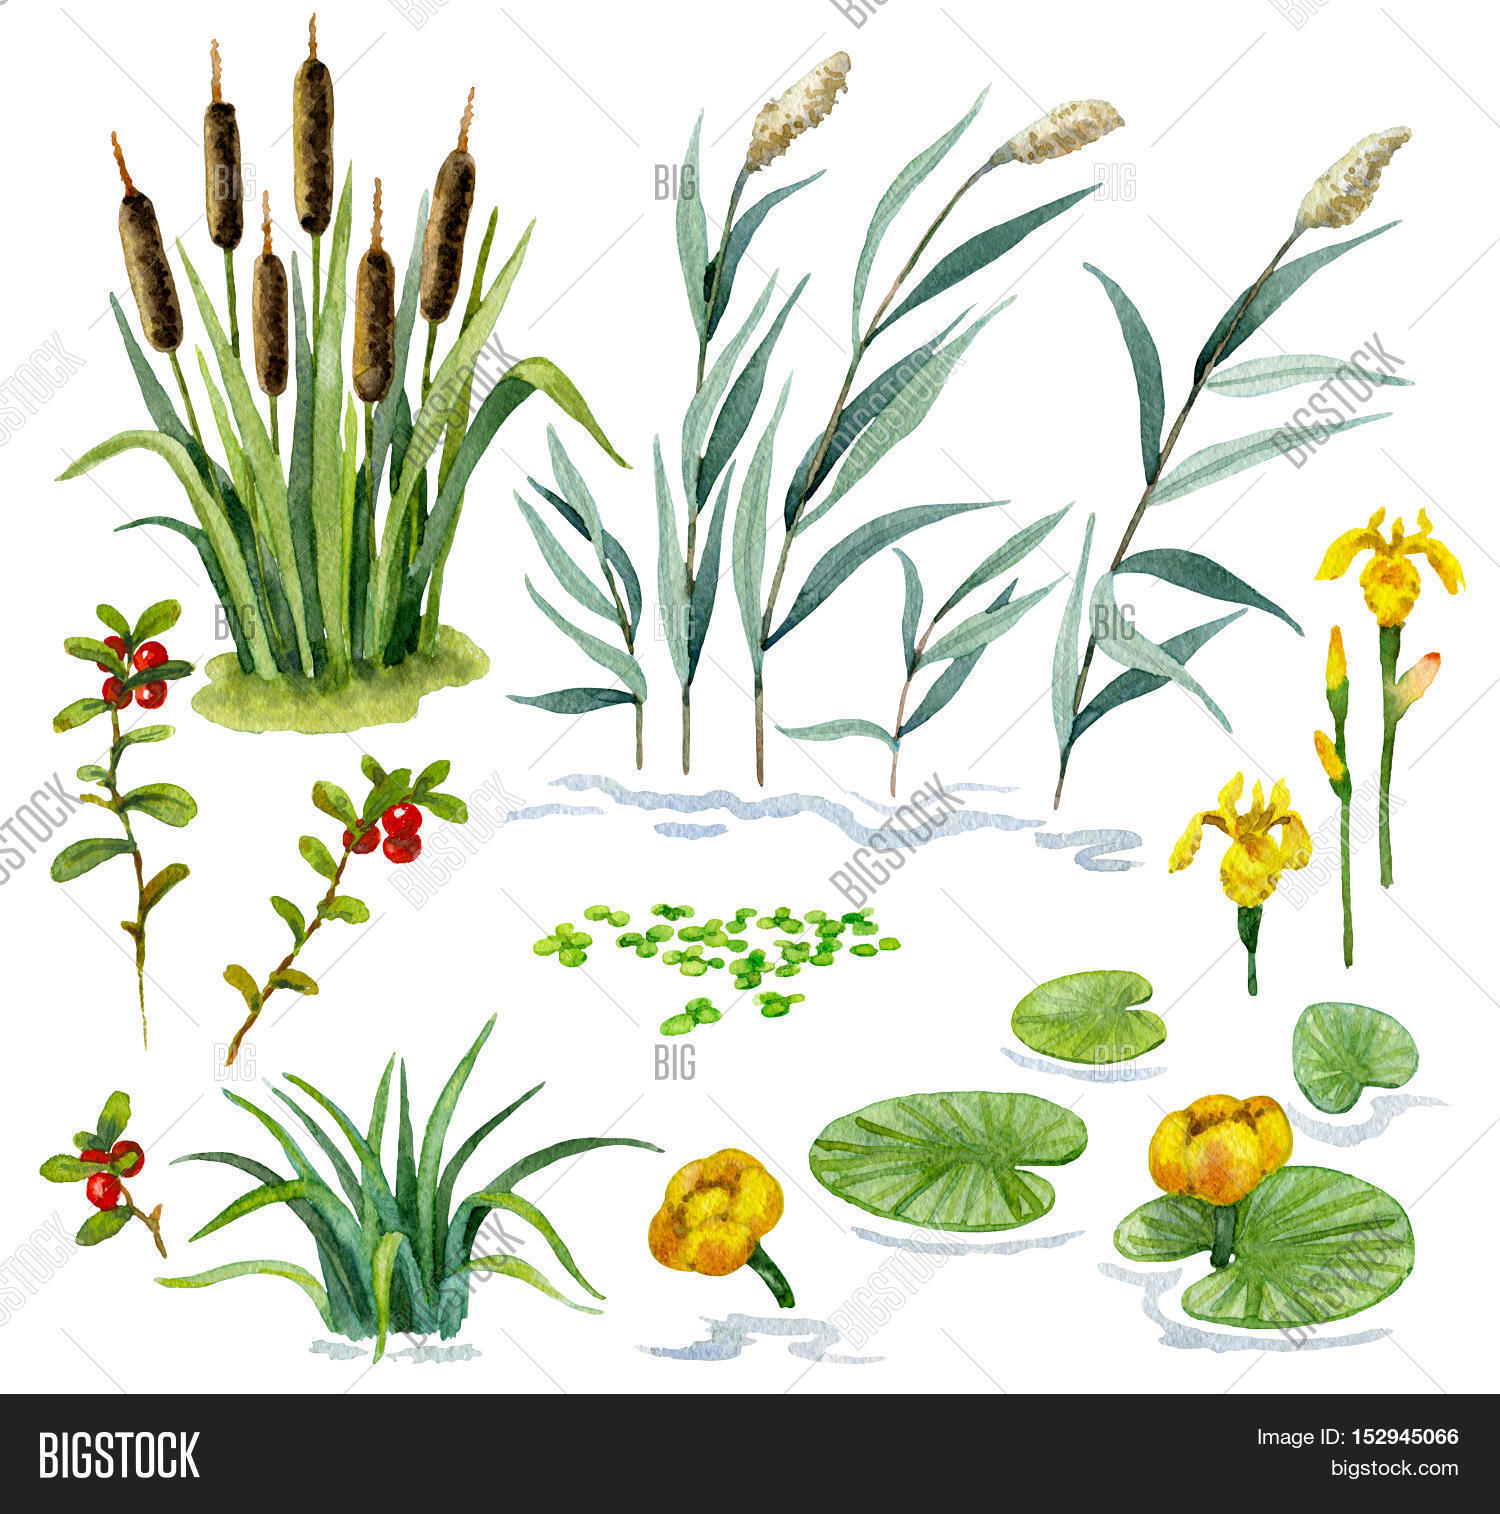 Raster colorful watercolor set of some wetland plants isolated on.